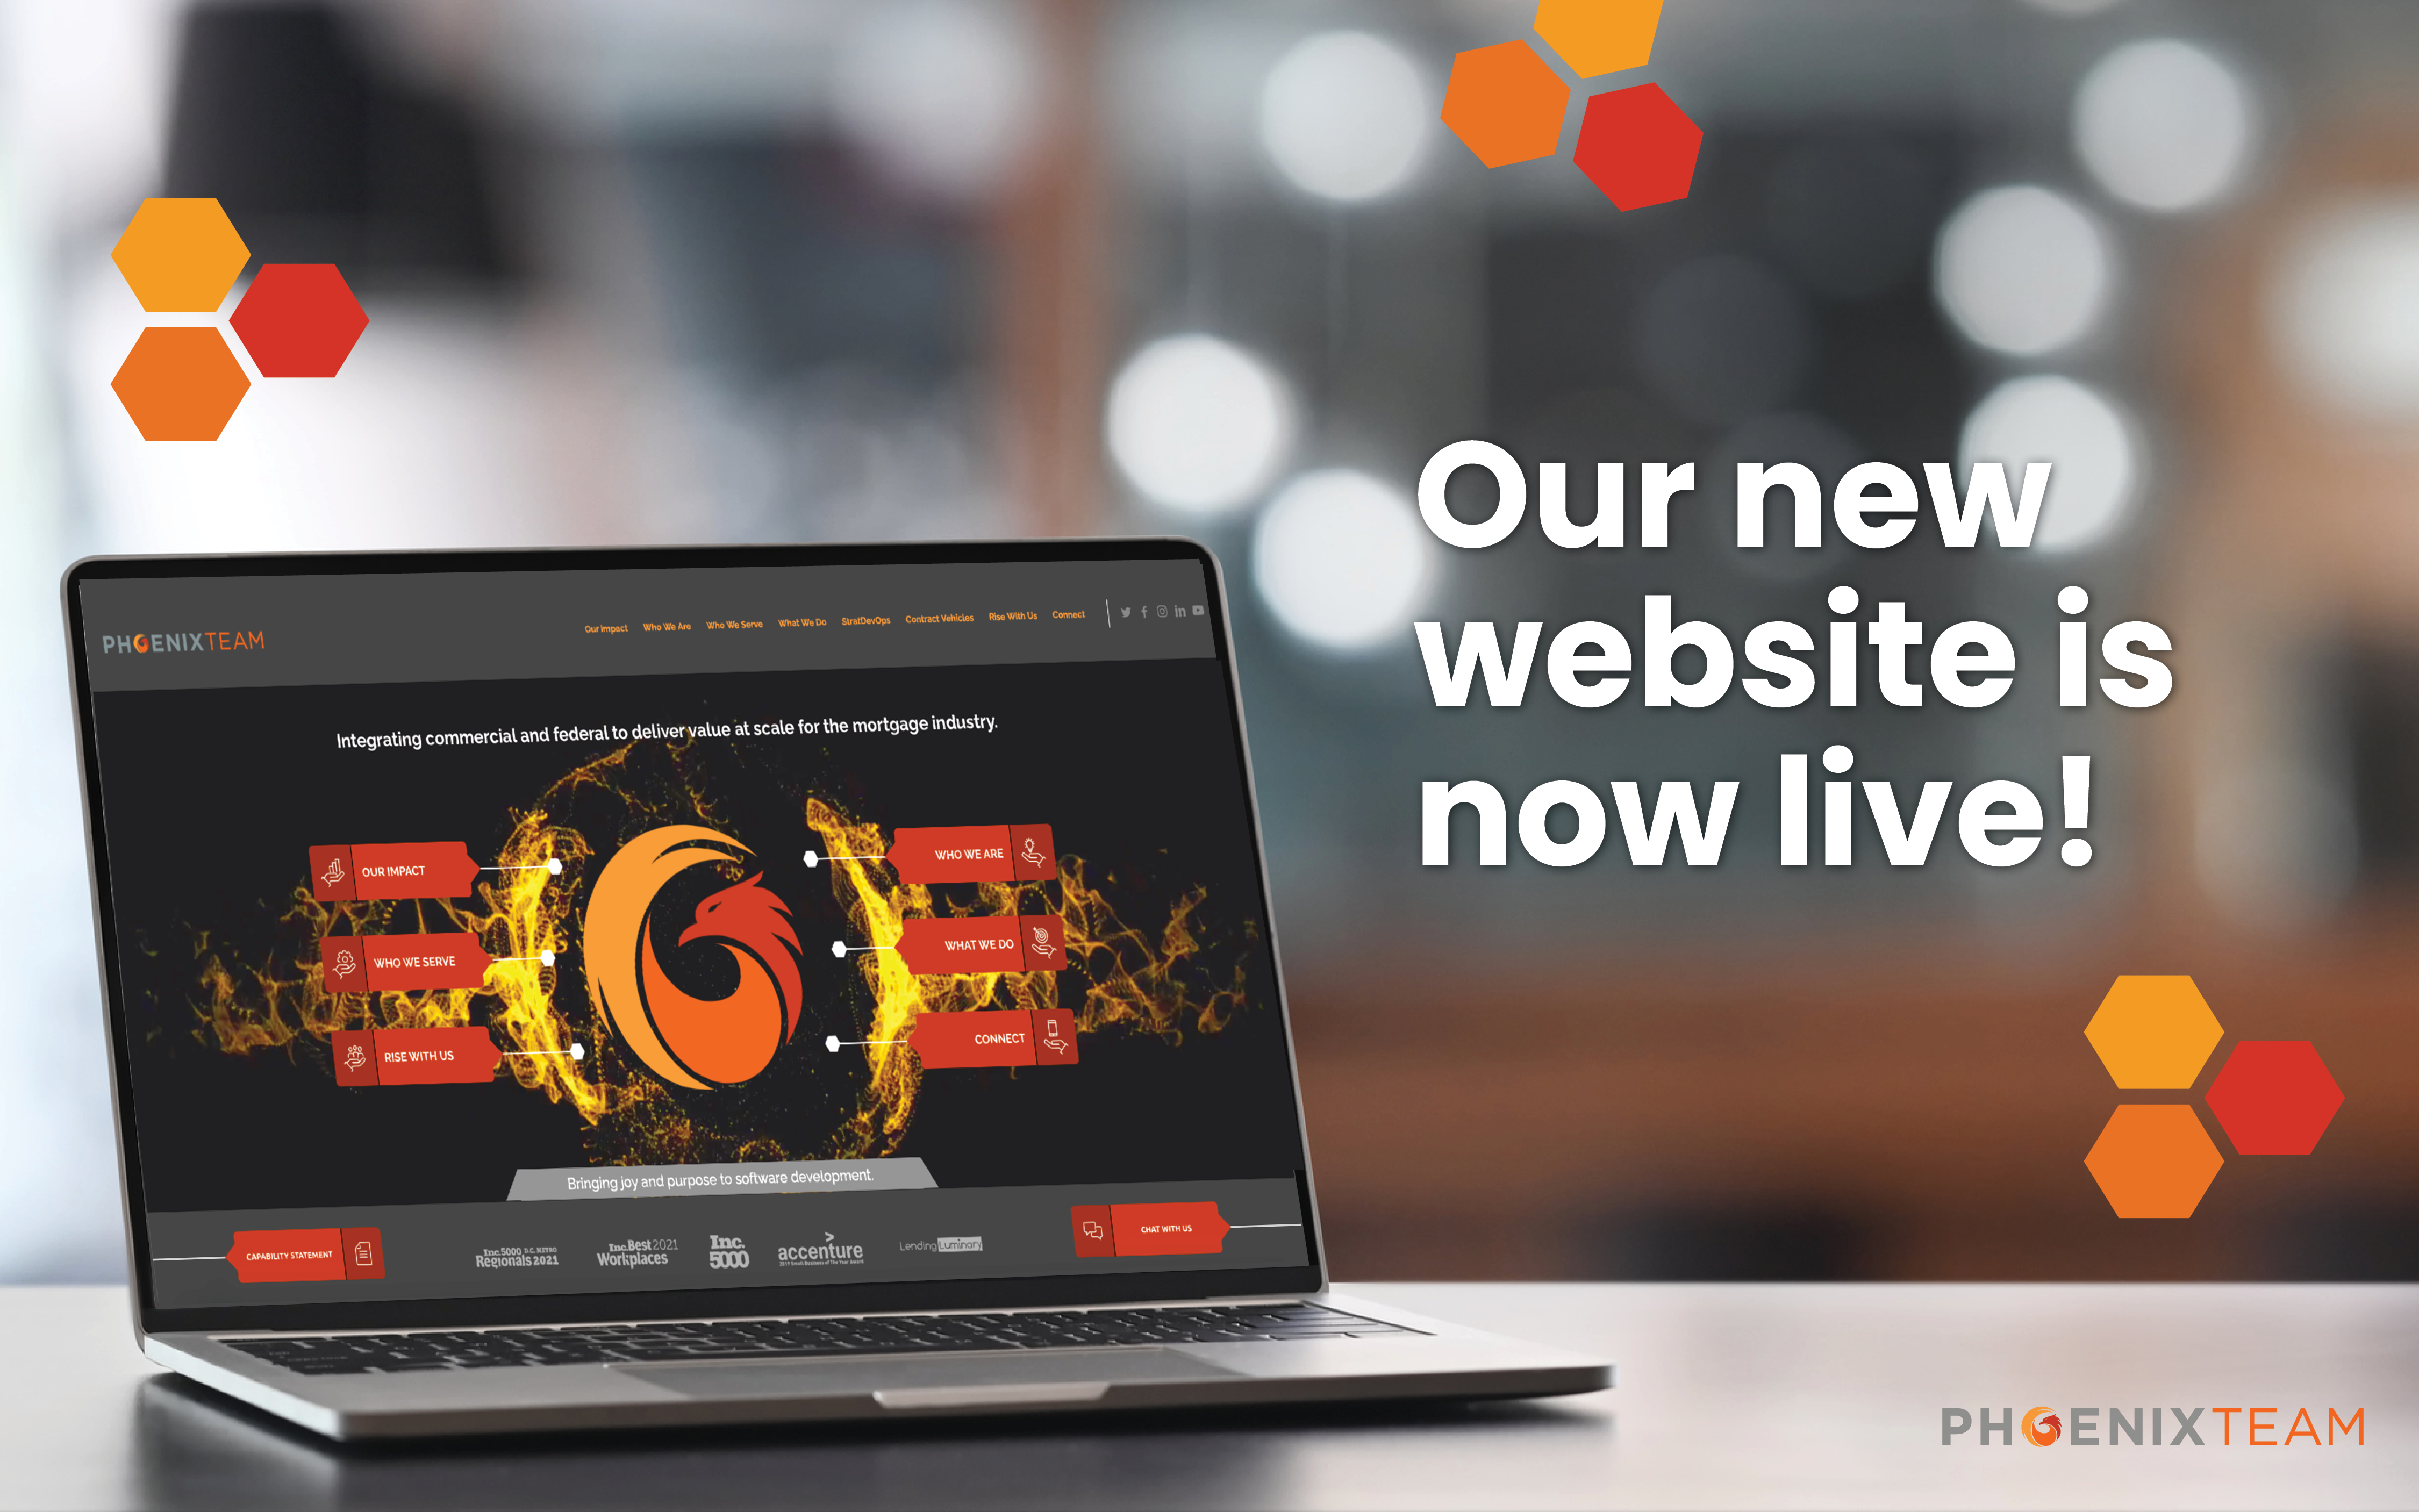 PhoenixTeam Our New Website is Live